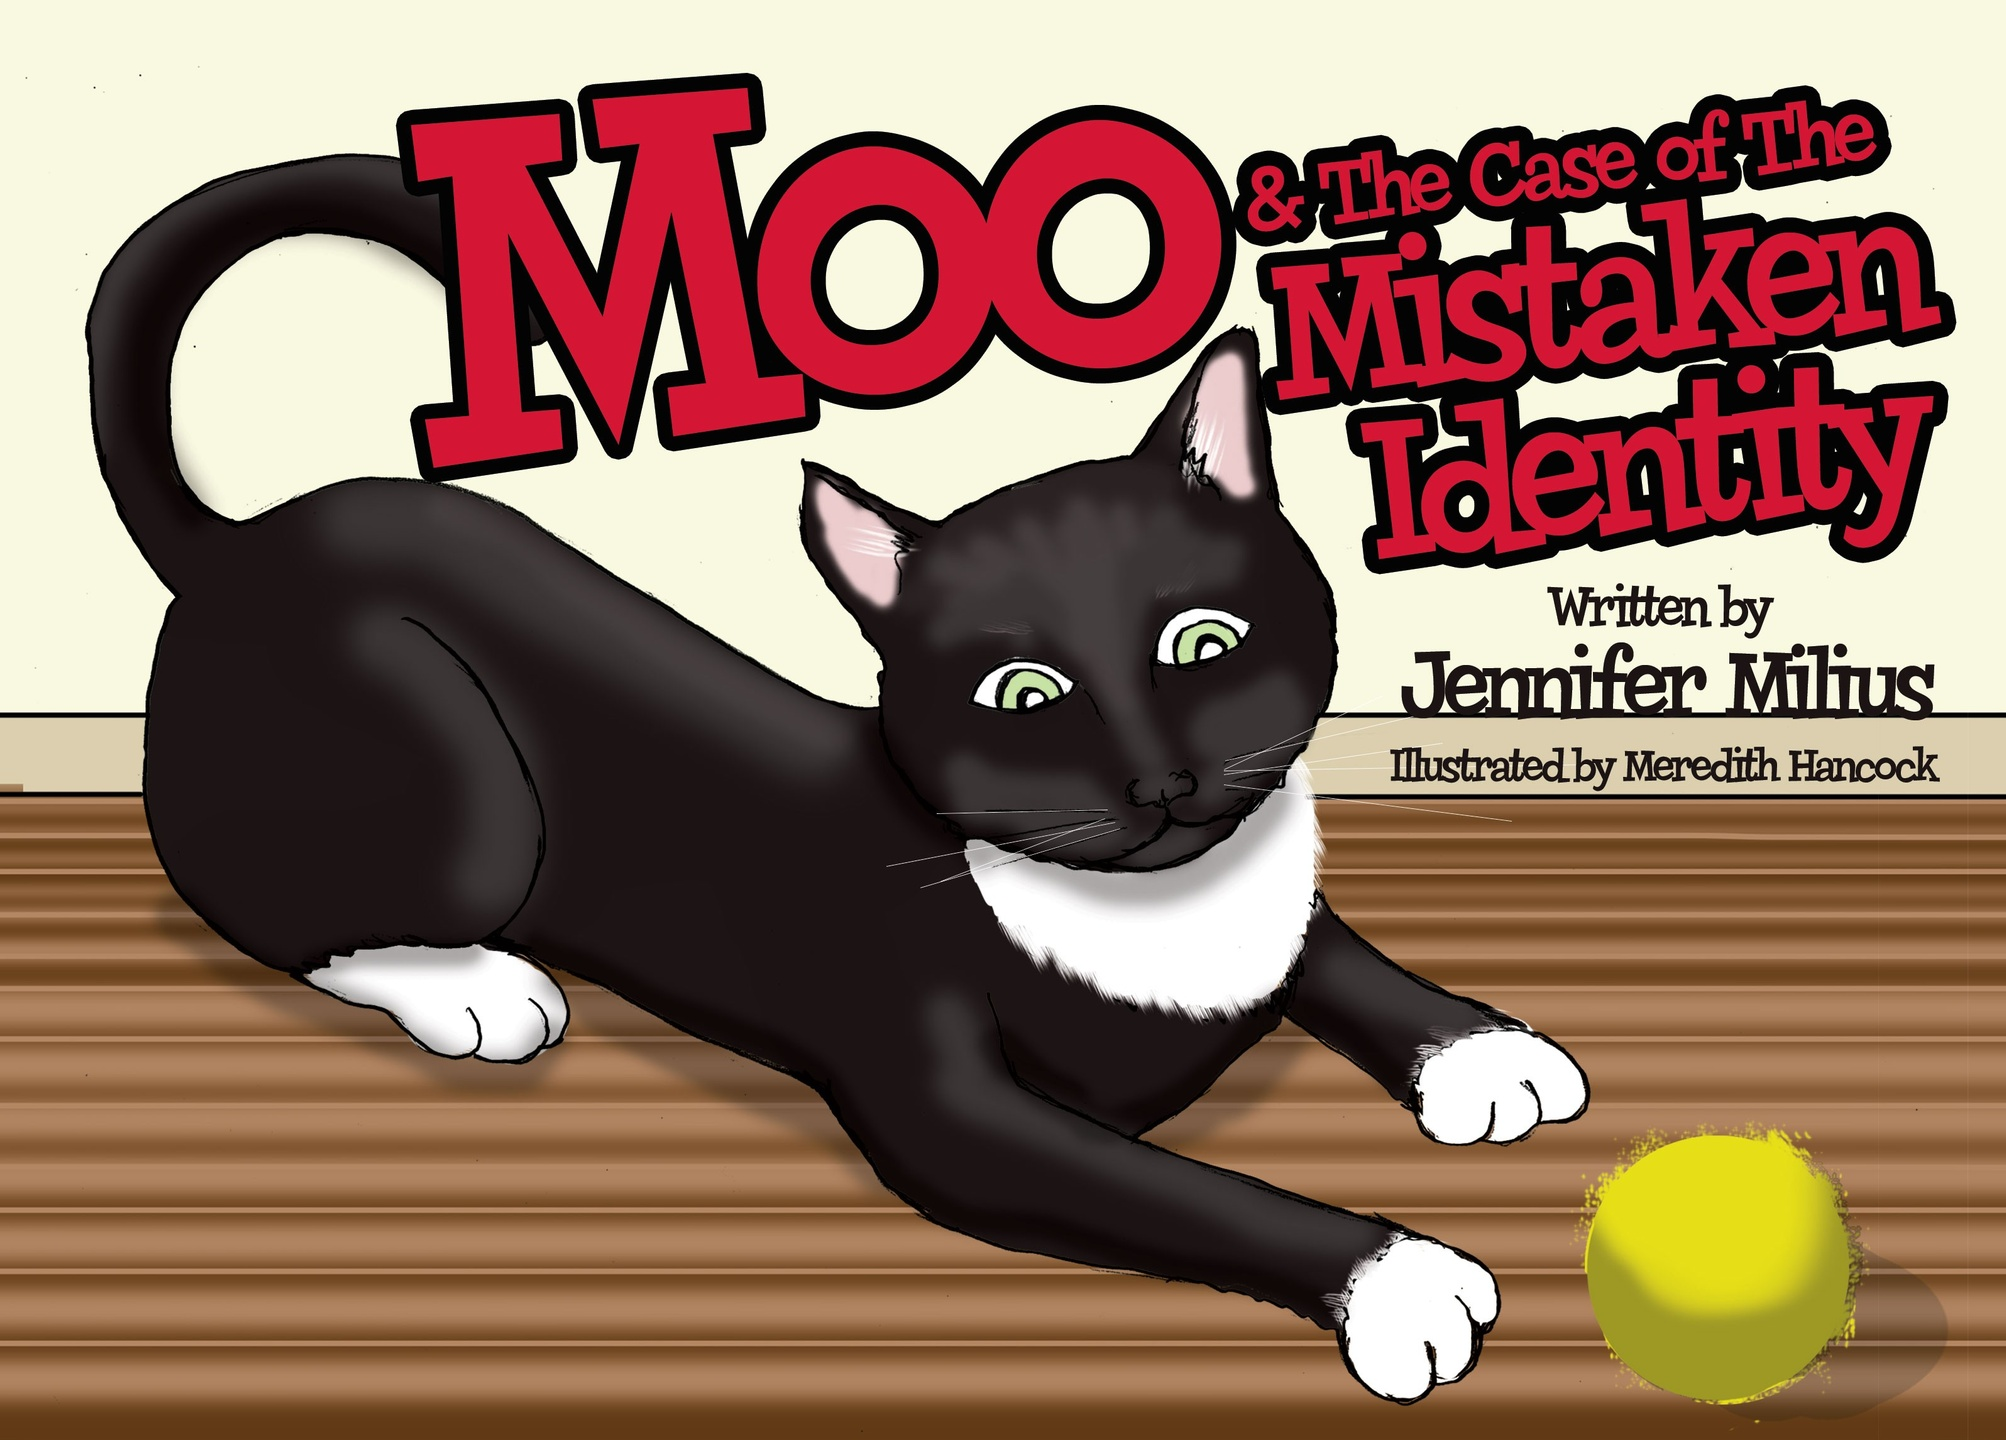 Moo and the Case of the Mistaken Identity by Jennifer Milius